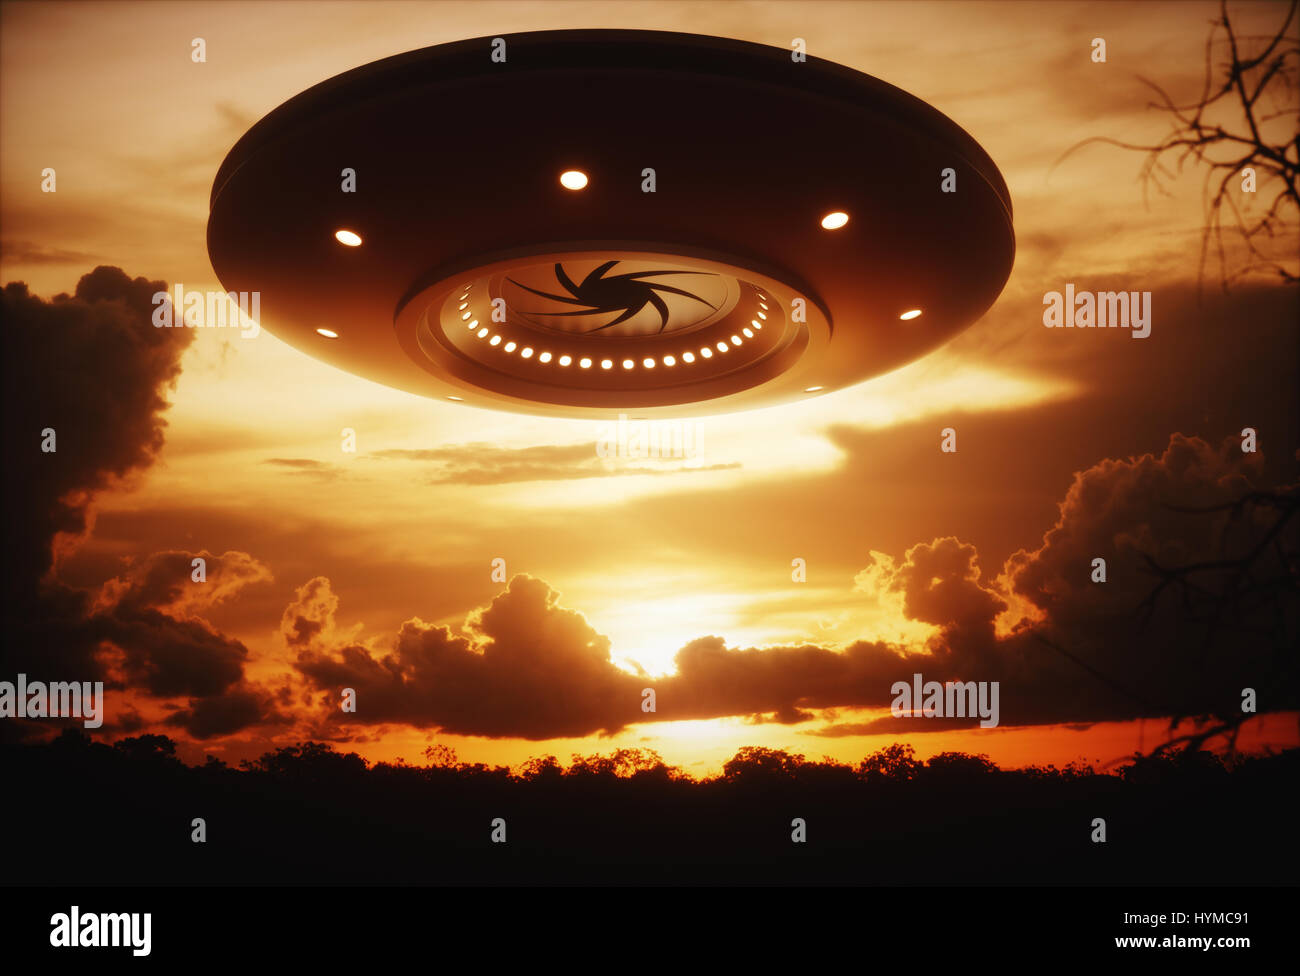 3D illustration with photography. Alien spaceship under the sunset. - Stock Image